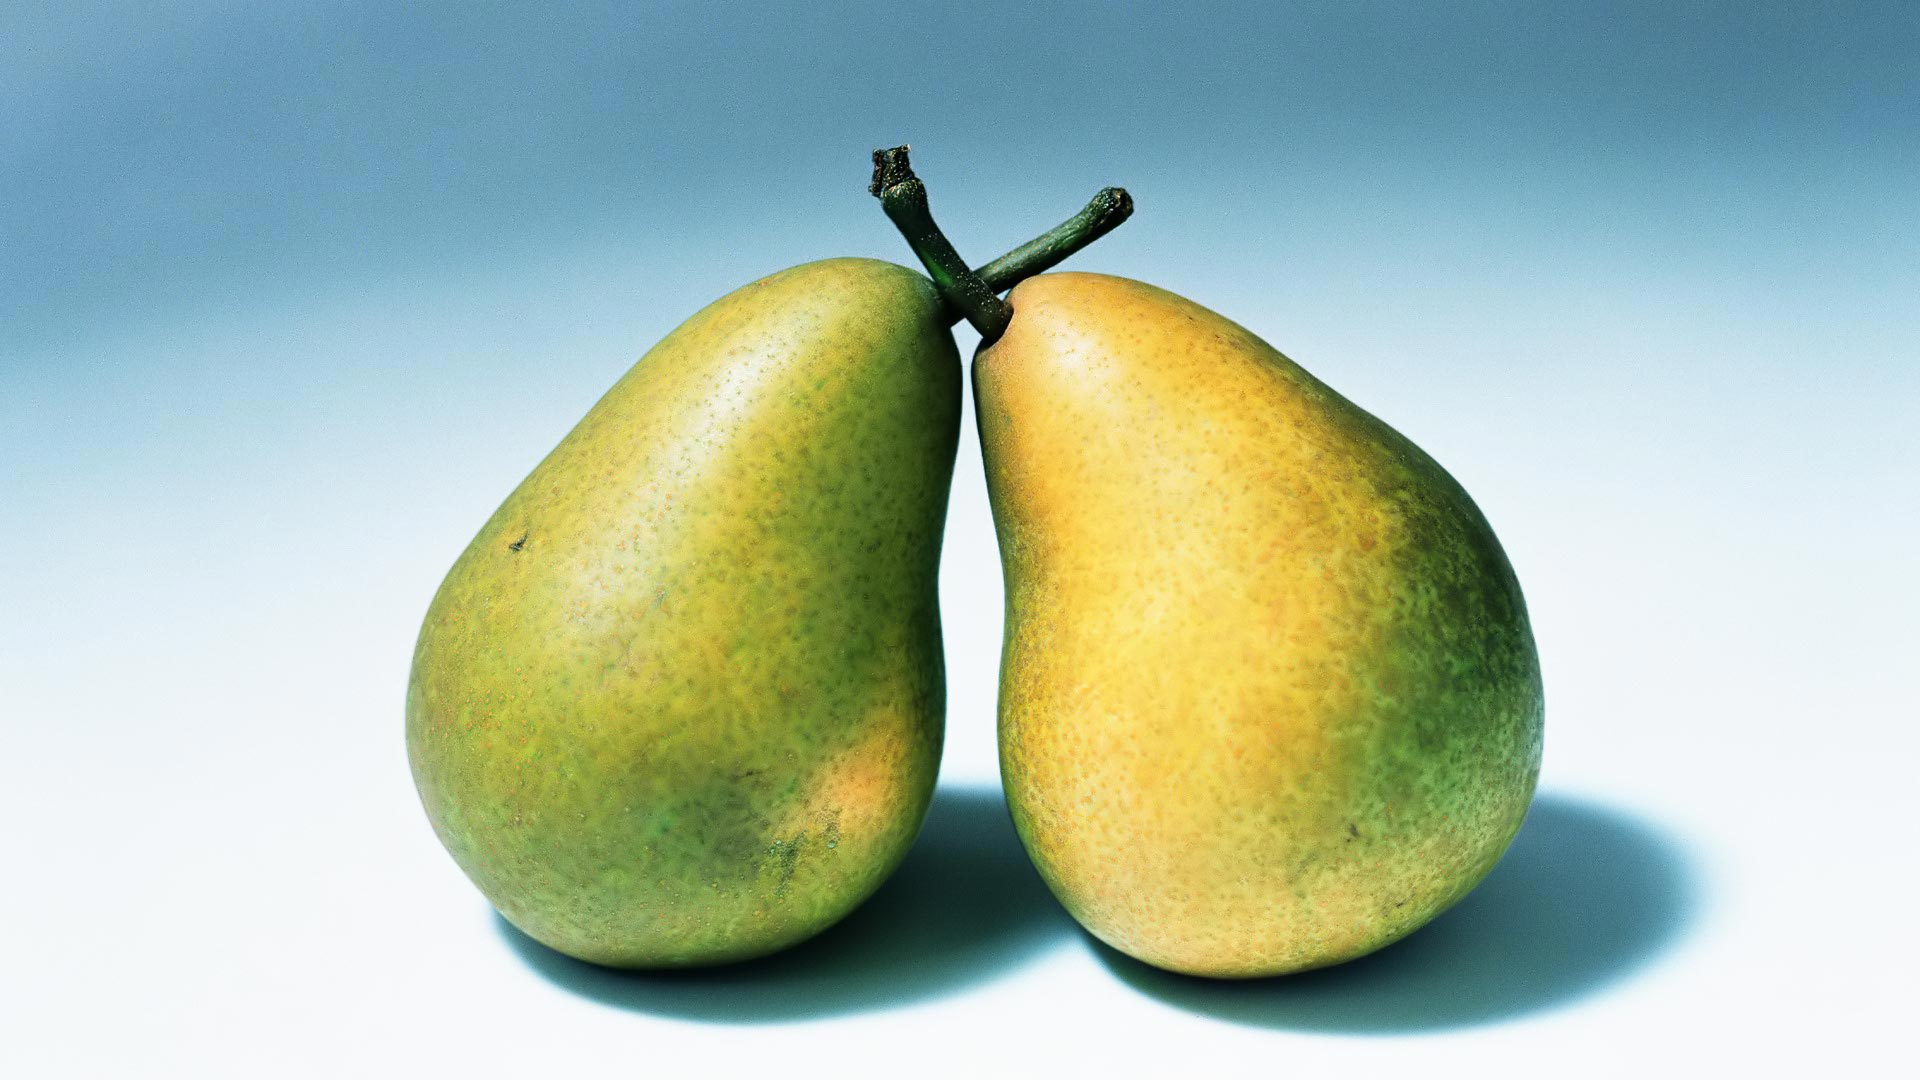 Pears fruit widescreen hd wallpaper   Background Wallpapers for your 1920x1080